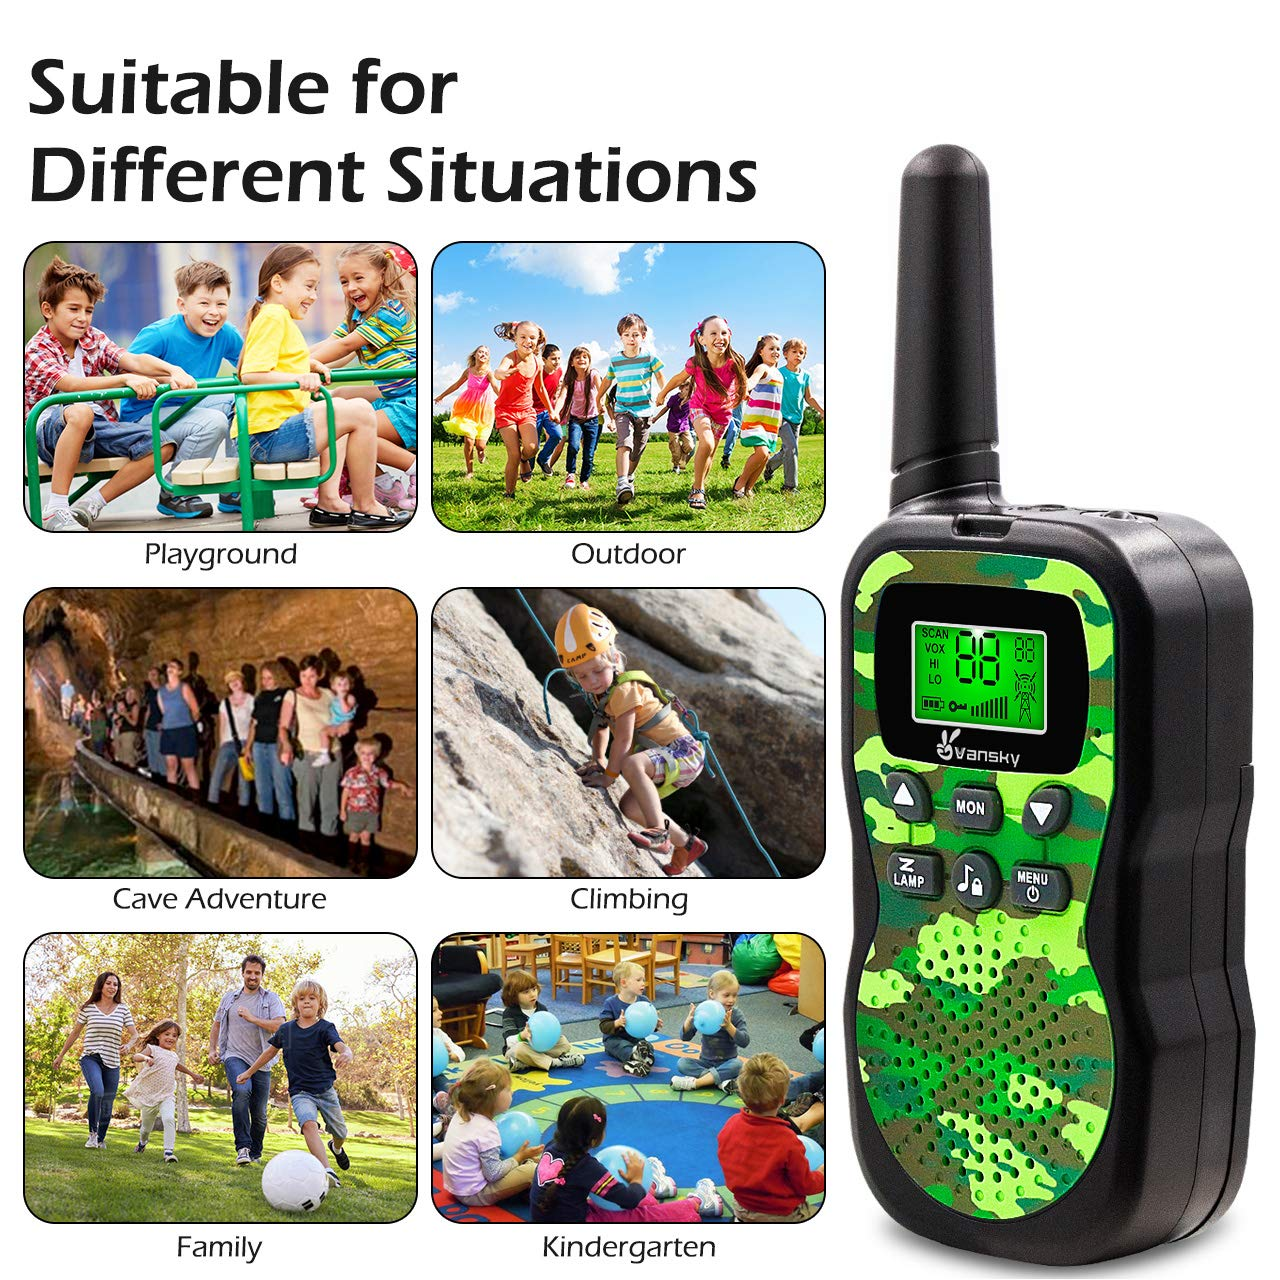 Vansky Walkie Talkies for Kids, Kids Toys 4 5 6 7 8 Age Boy Girl Long Range 22 Channel Built-in Flashlight 2 Way Radio Best Gifts Games, Outdoor Adventure, Camping, Hiking (Camo Green) by Vansky (Image #7)